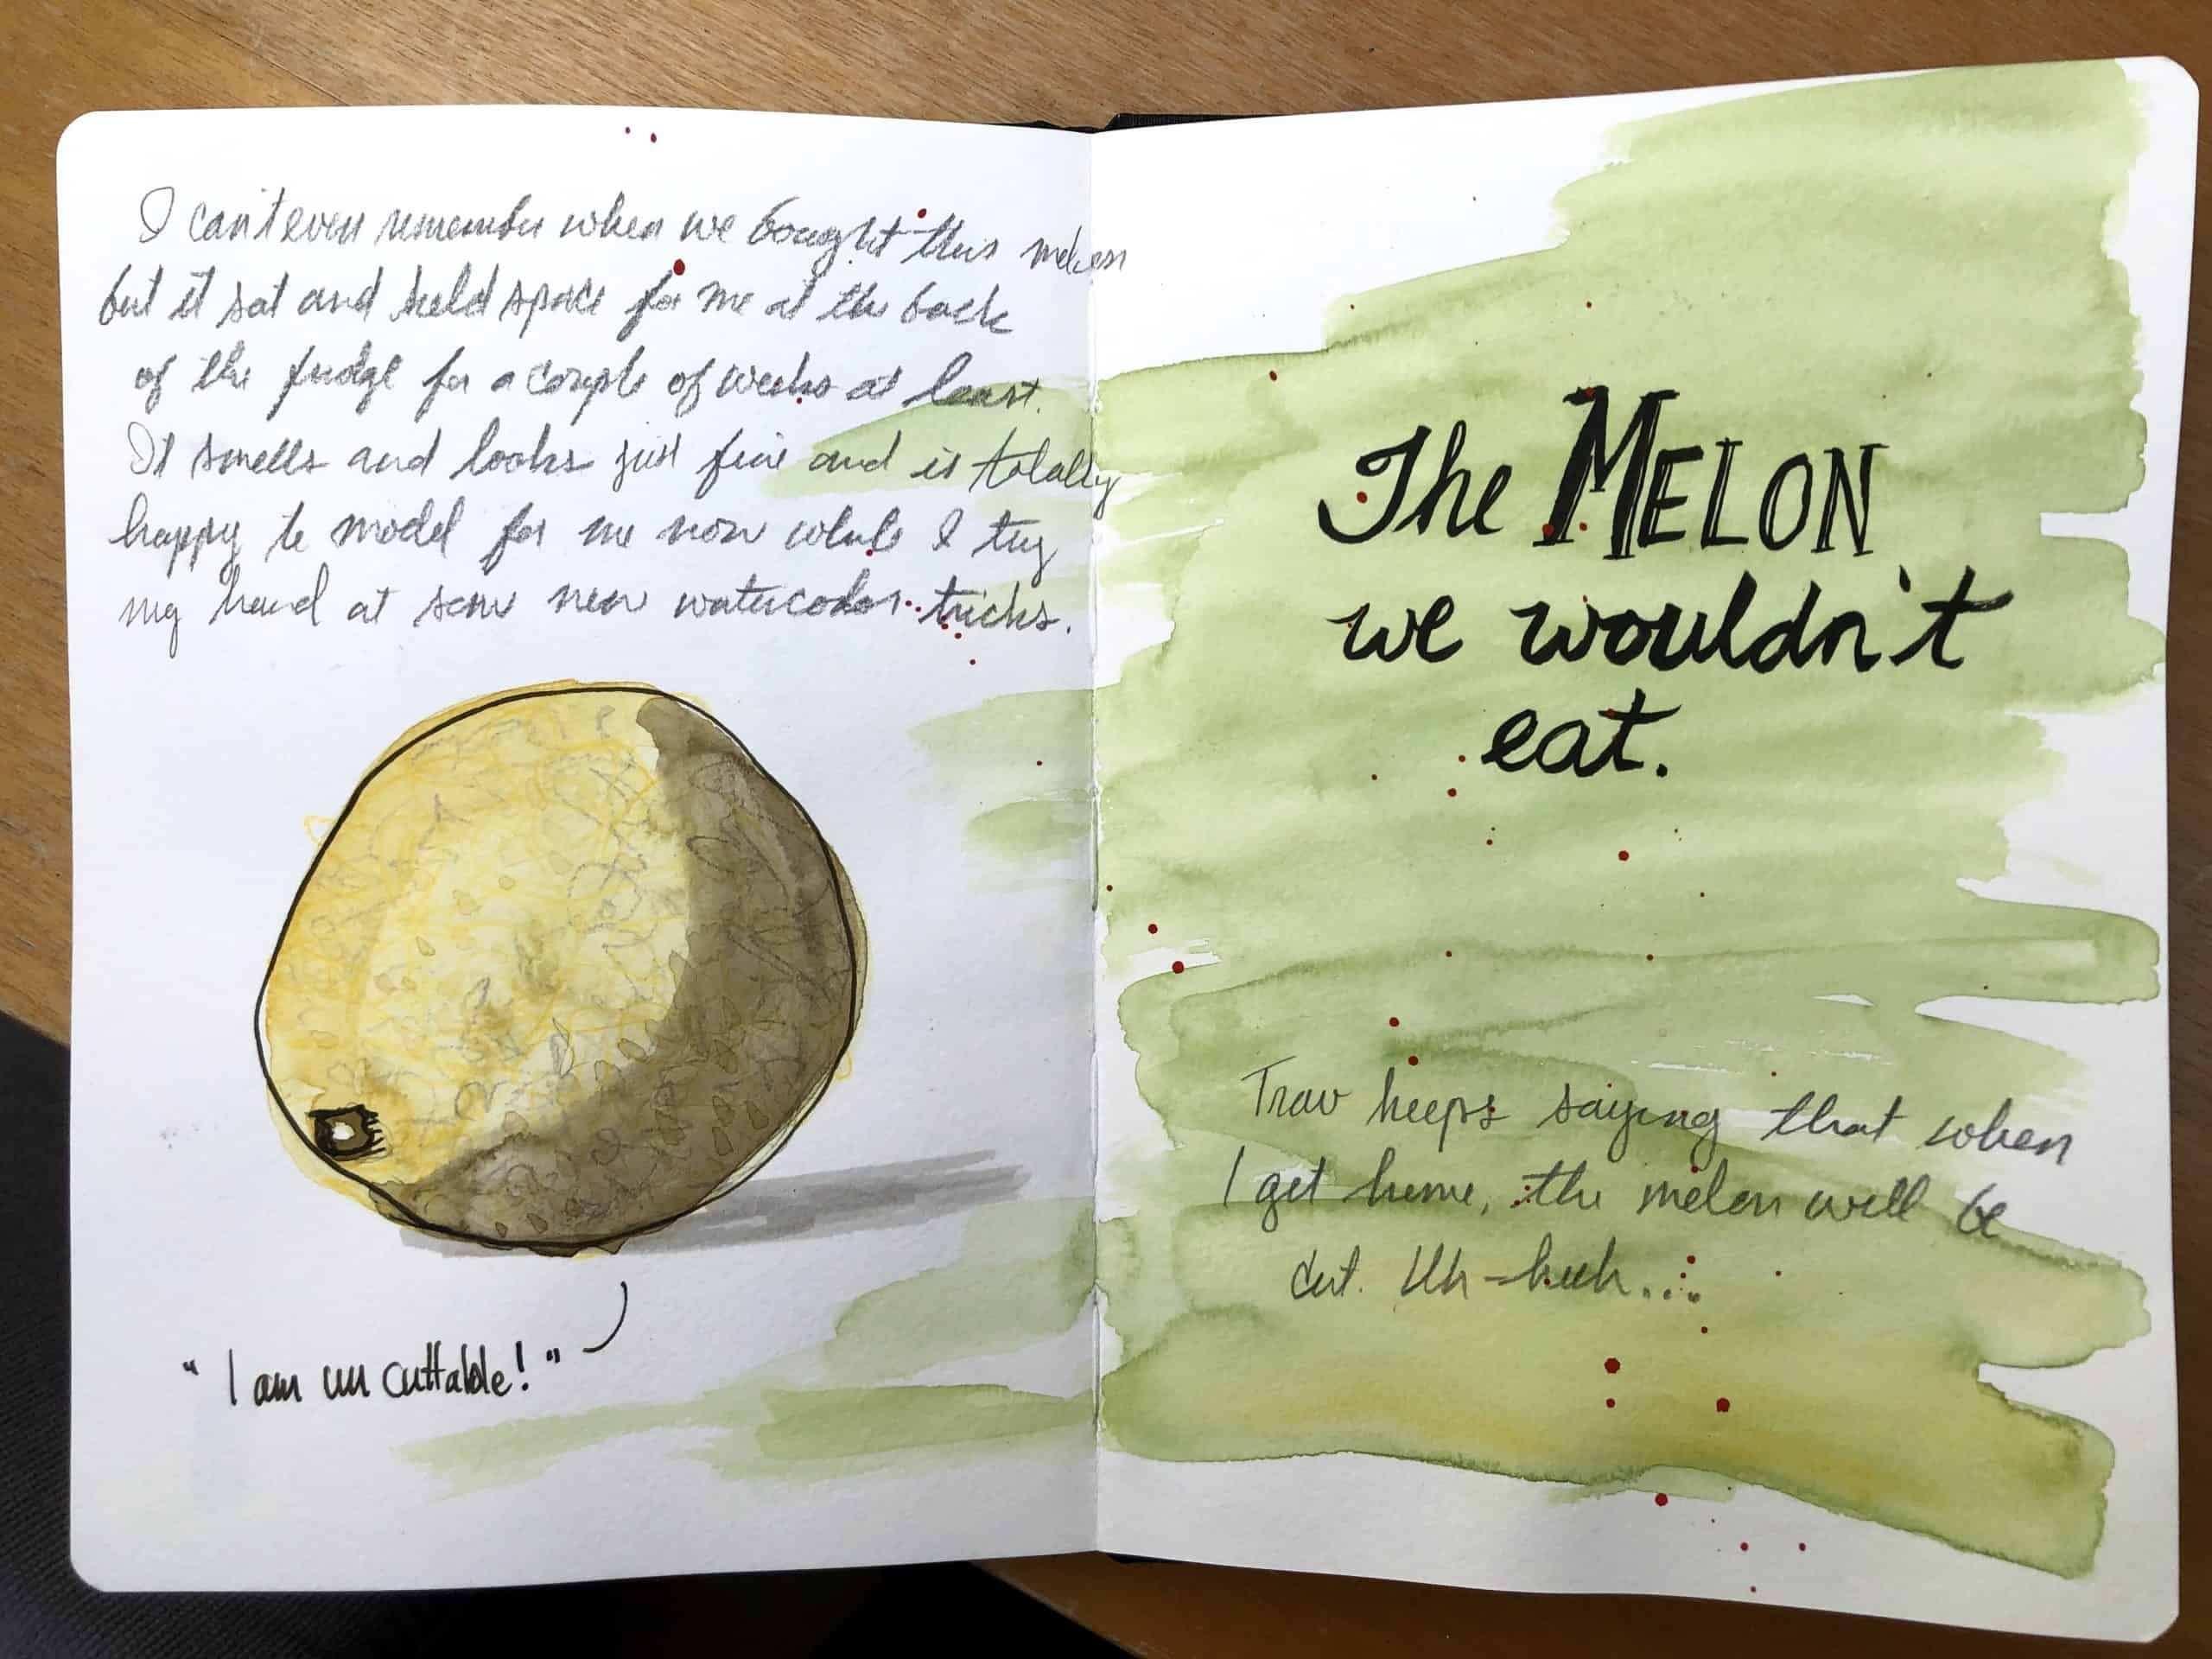 Schmoo Theune the melon we wouldn't eat sketch